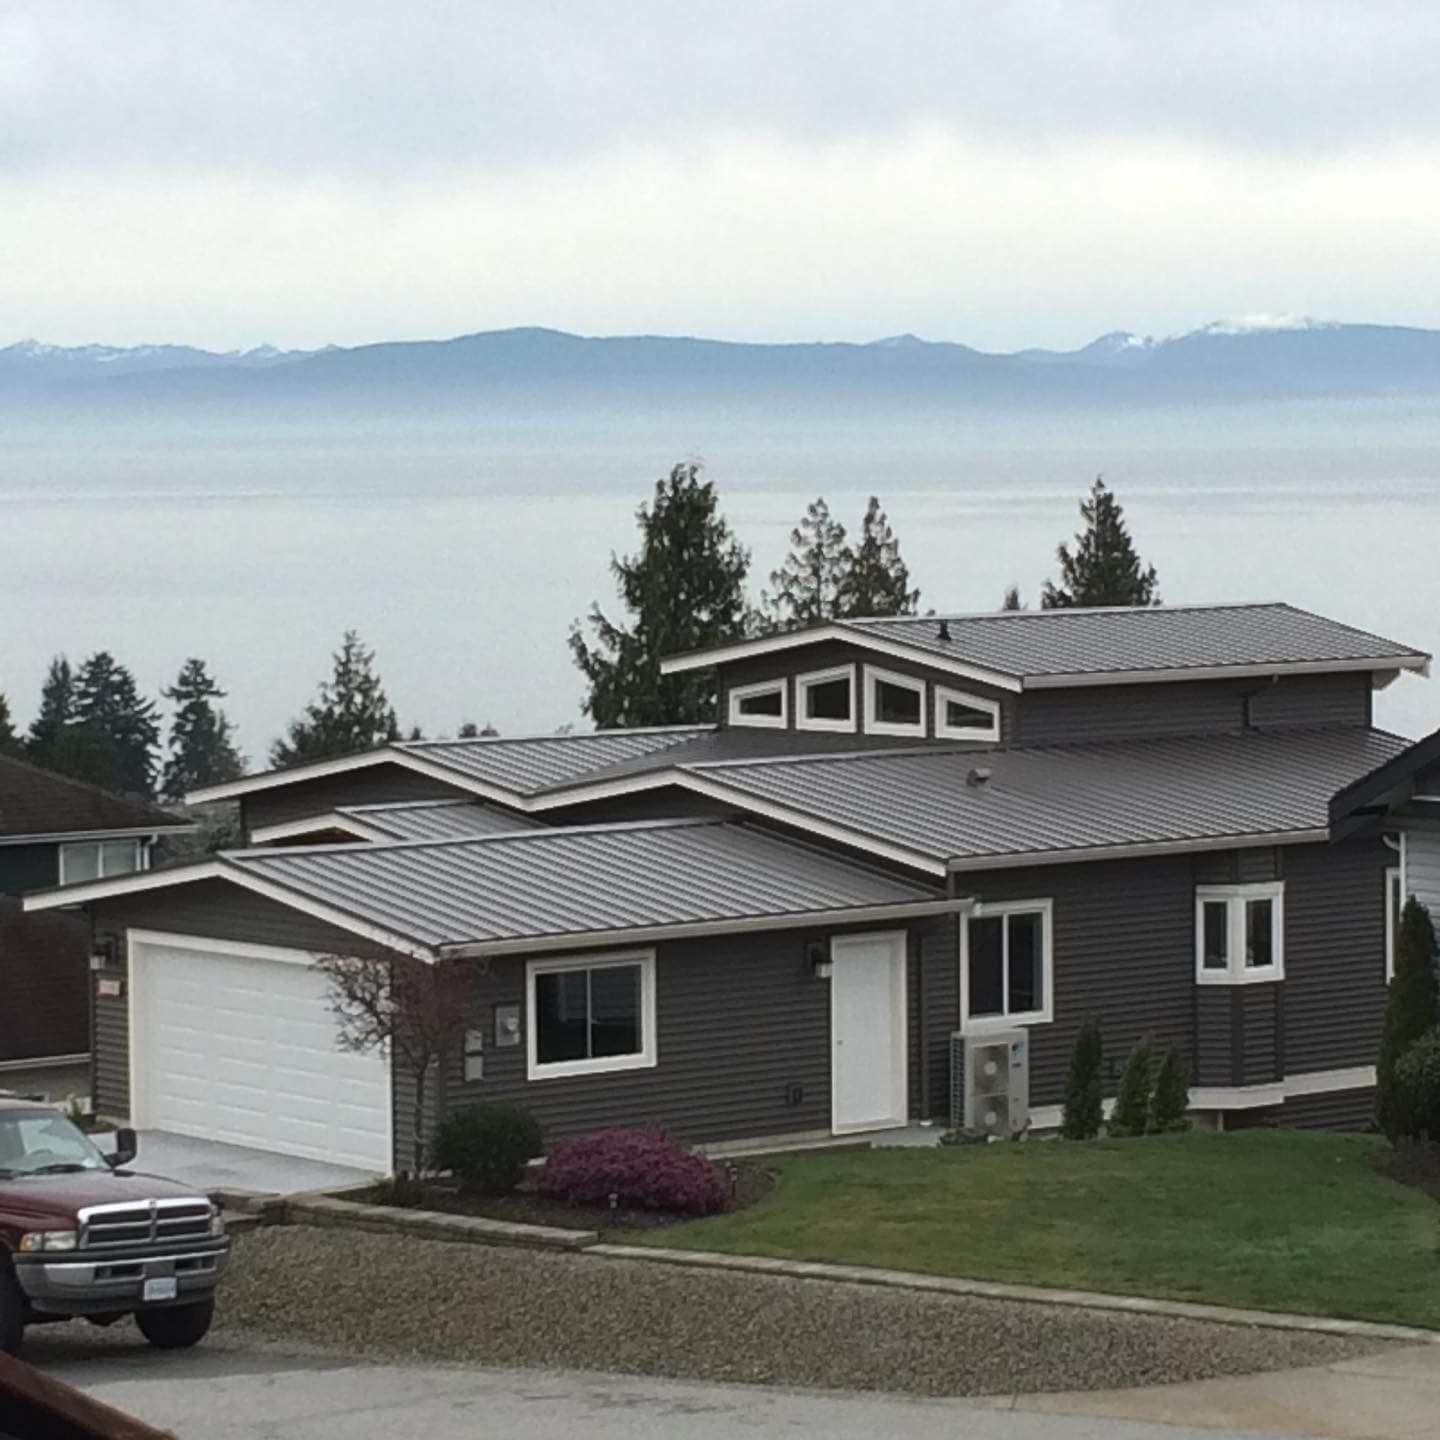 Residential roofing on the Sunshine Coast, BC